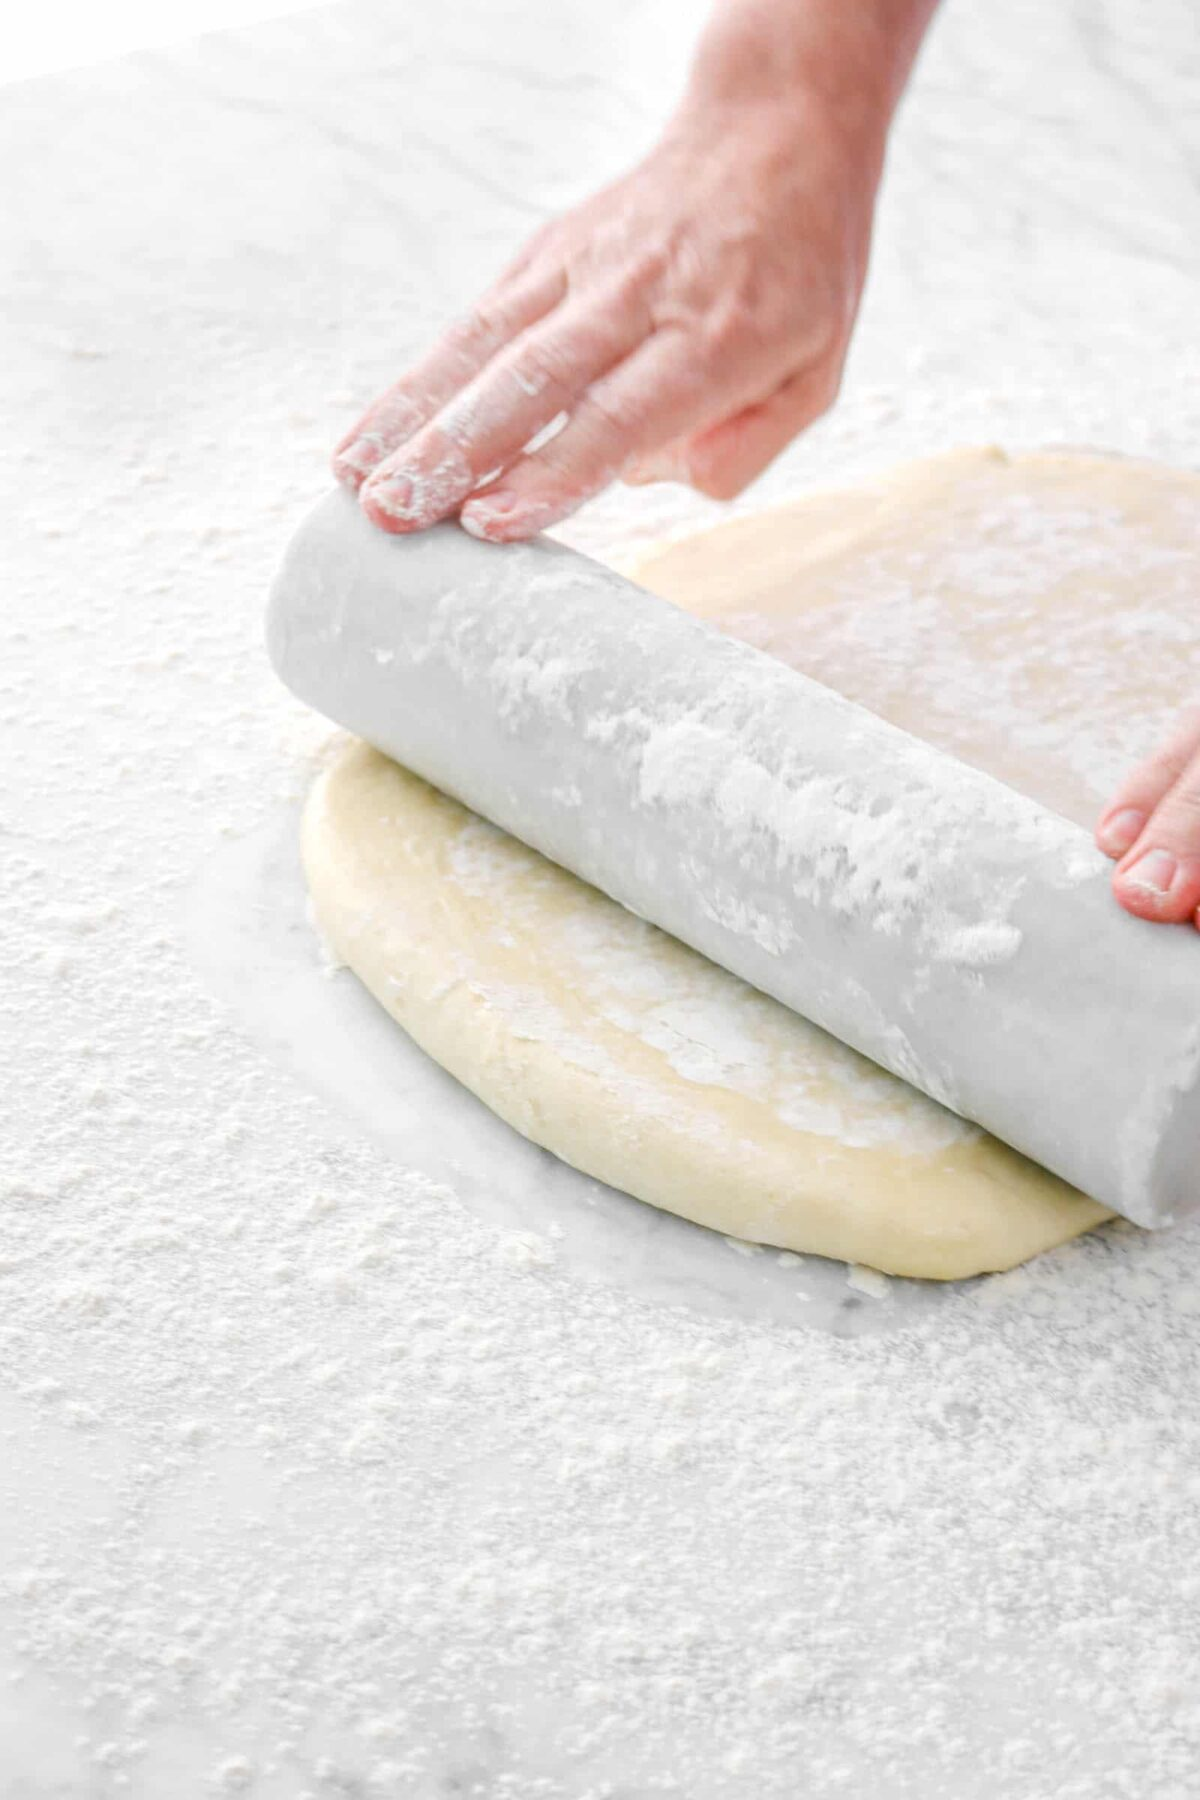 dough being rolled out with marble rolling pin